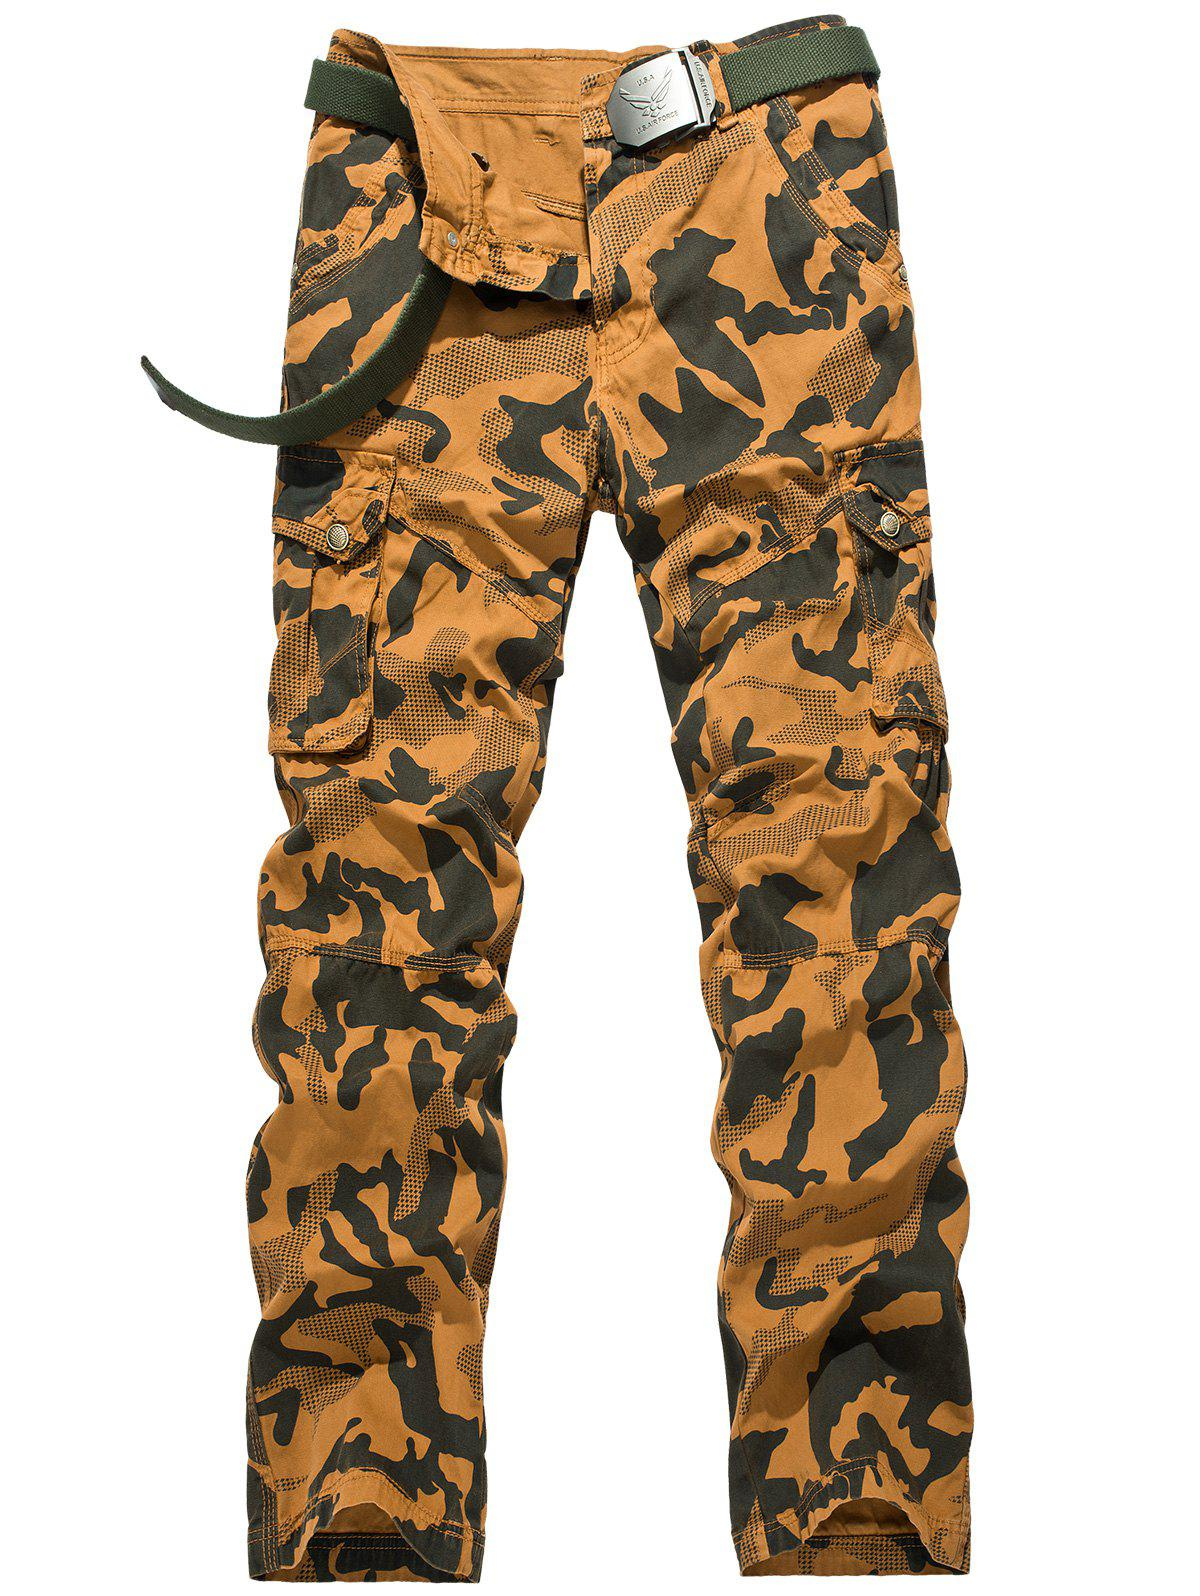 Swallow Gird Camouflage Cargo Pants - EARTHY 38